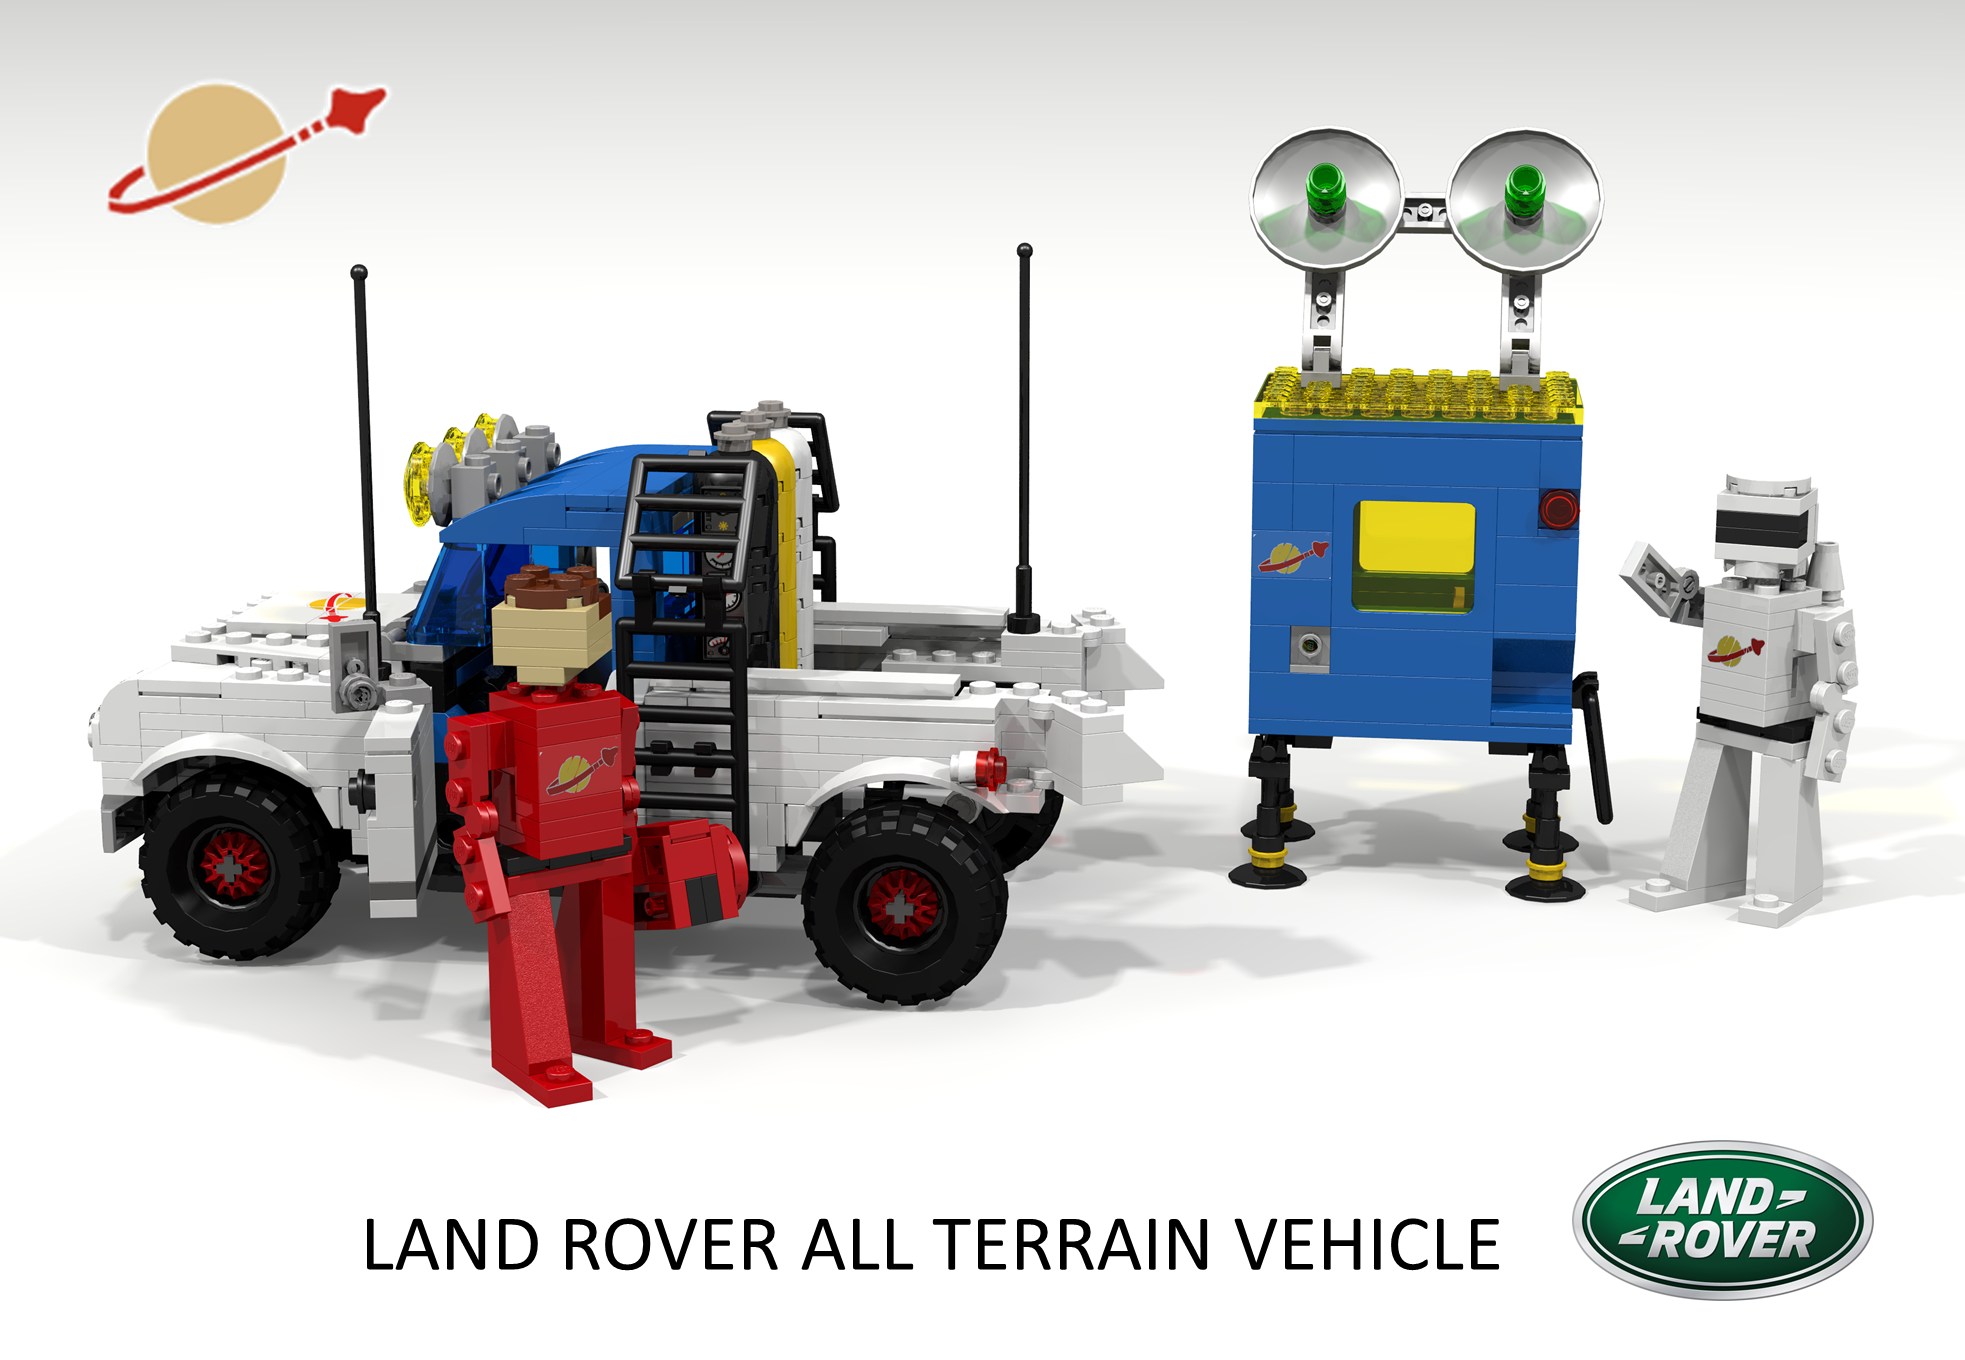 ll6924n_land_rover_all_terrain_vehicle_04.png